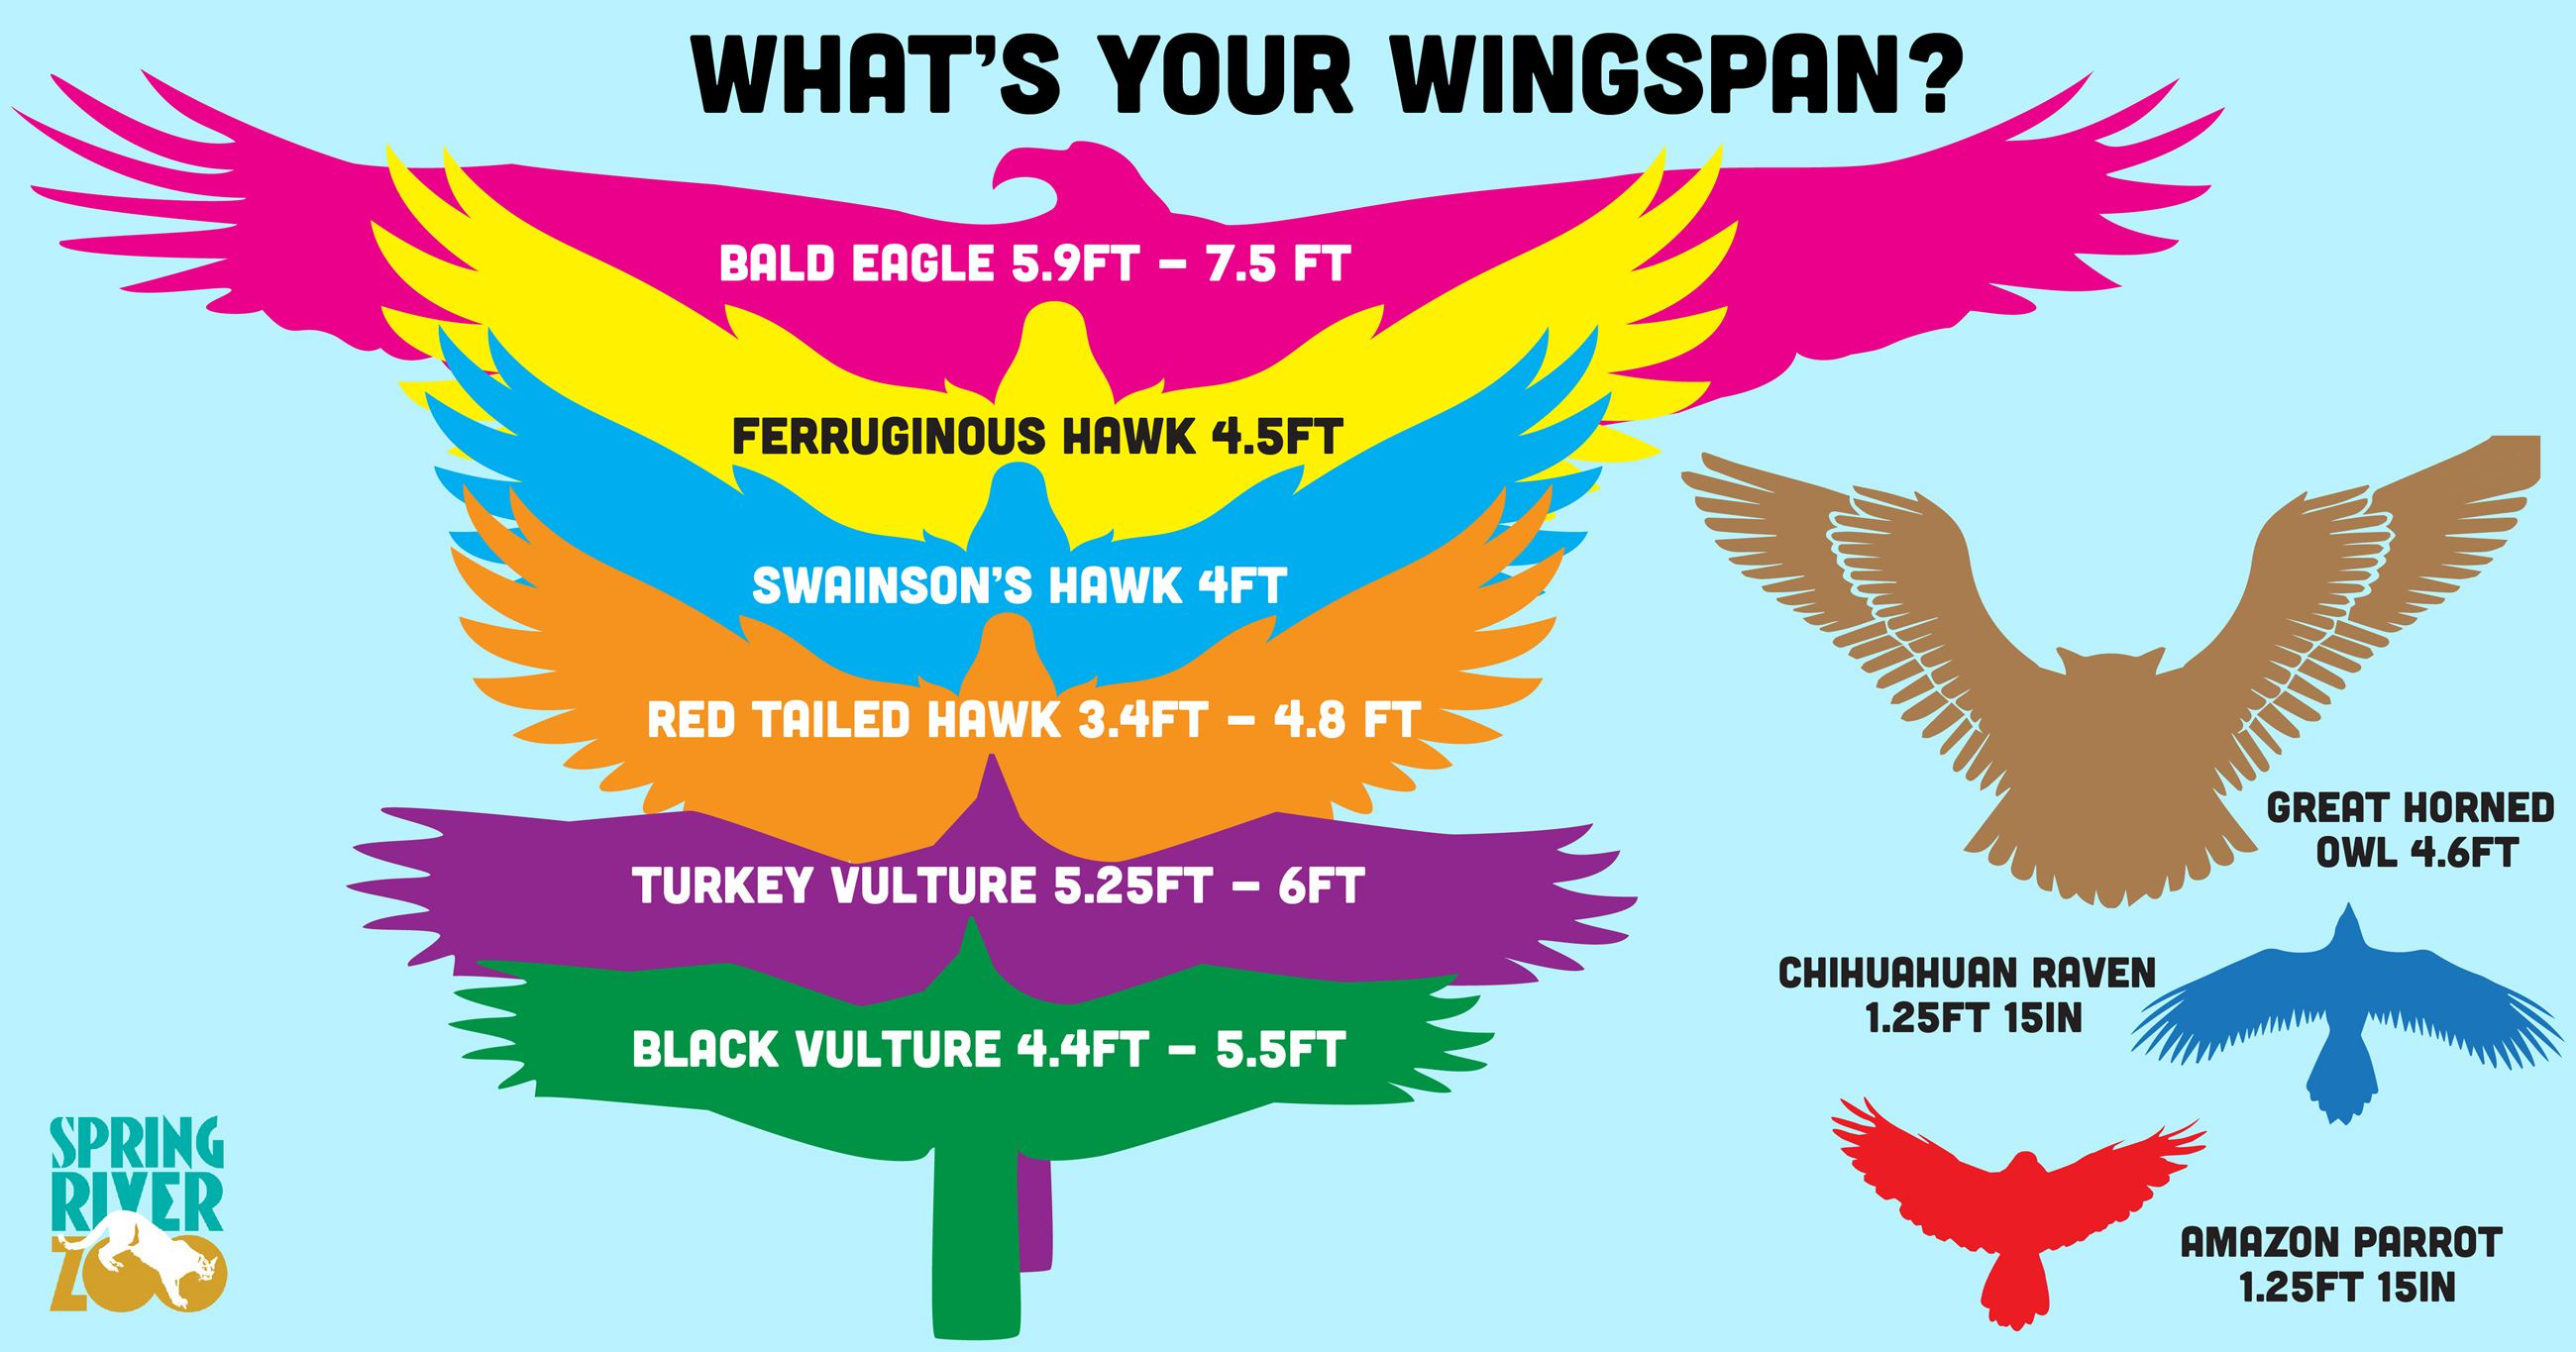 Infographic of wingspans of different birds